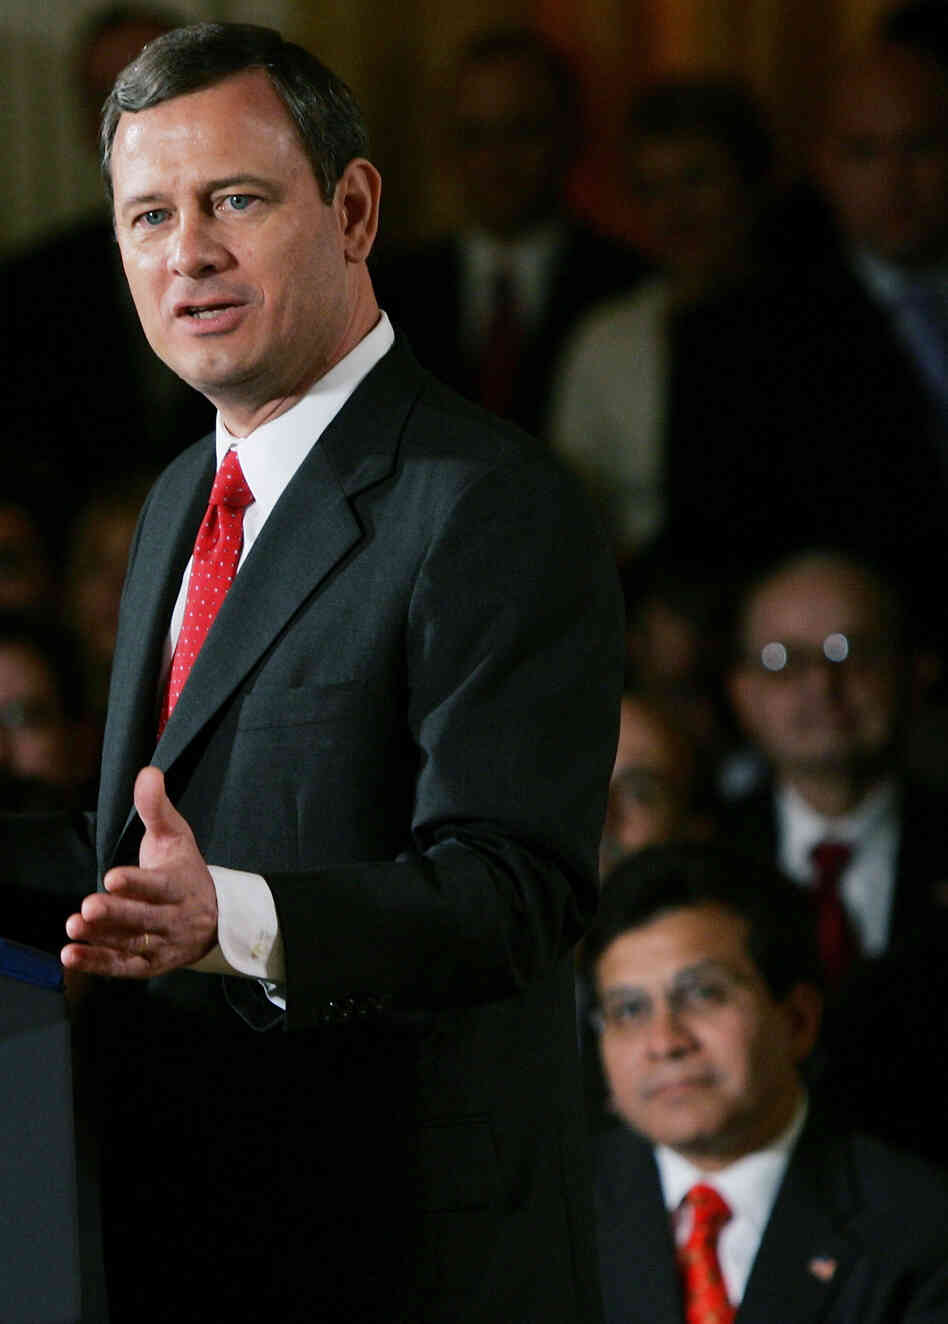 Sept. 29, 2005: Then-Attorney General Alberto Gonzales, at lower right, watches as Supreme Court Chief Justice John Roberts speaks after being